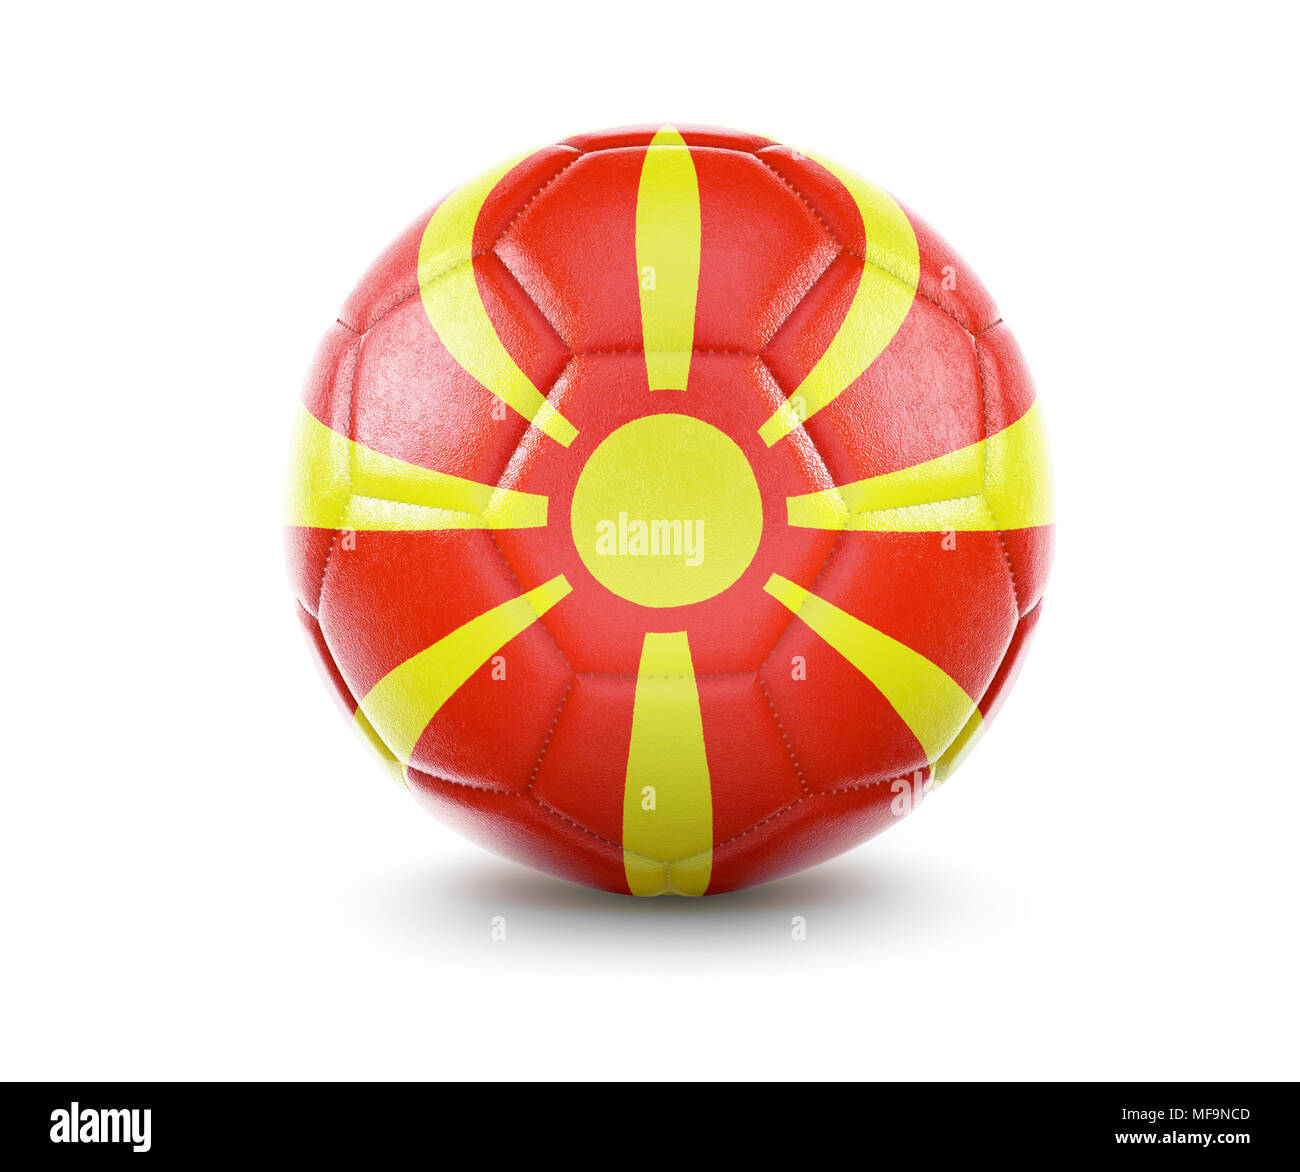 High qualitiy rendering of a soccer ball with the flag of Macedonia.(series) - Stock Image